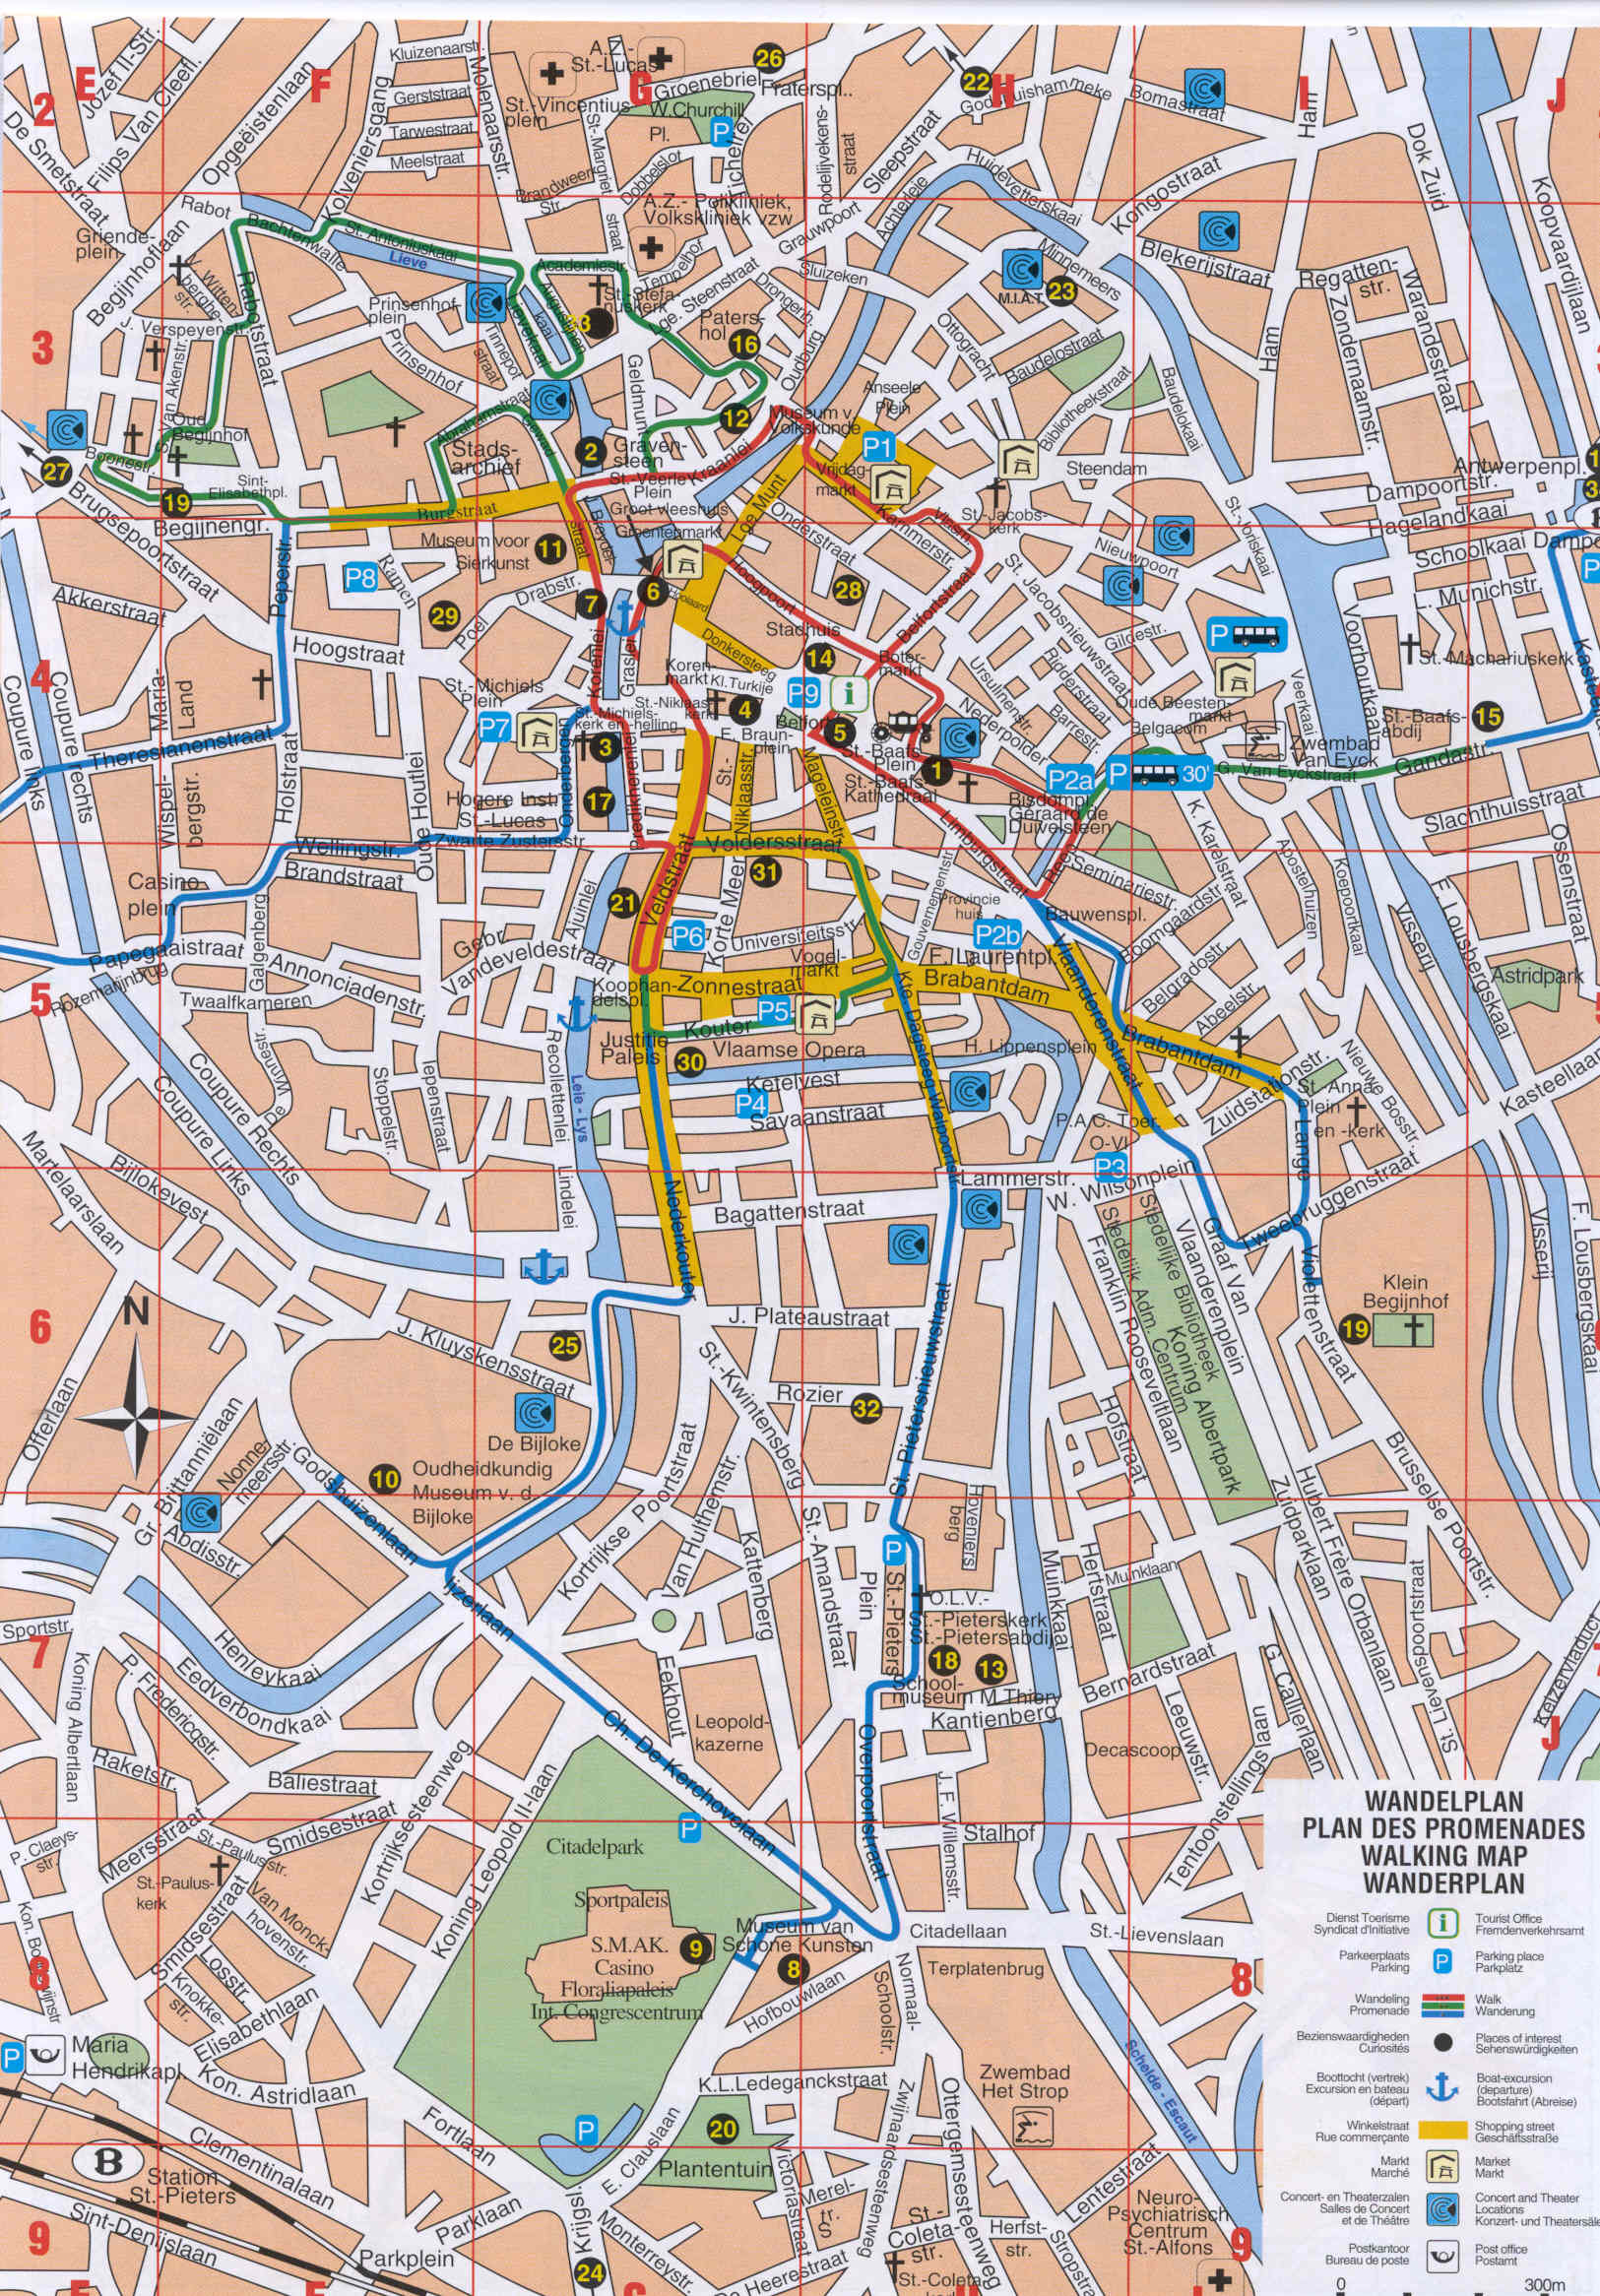 gent belgica mapa Gent Map   Detailed City and Metro Maps of Gent for Download  gent belgica mapa